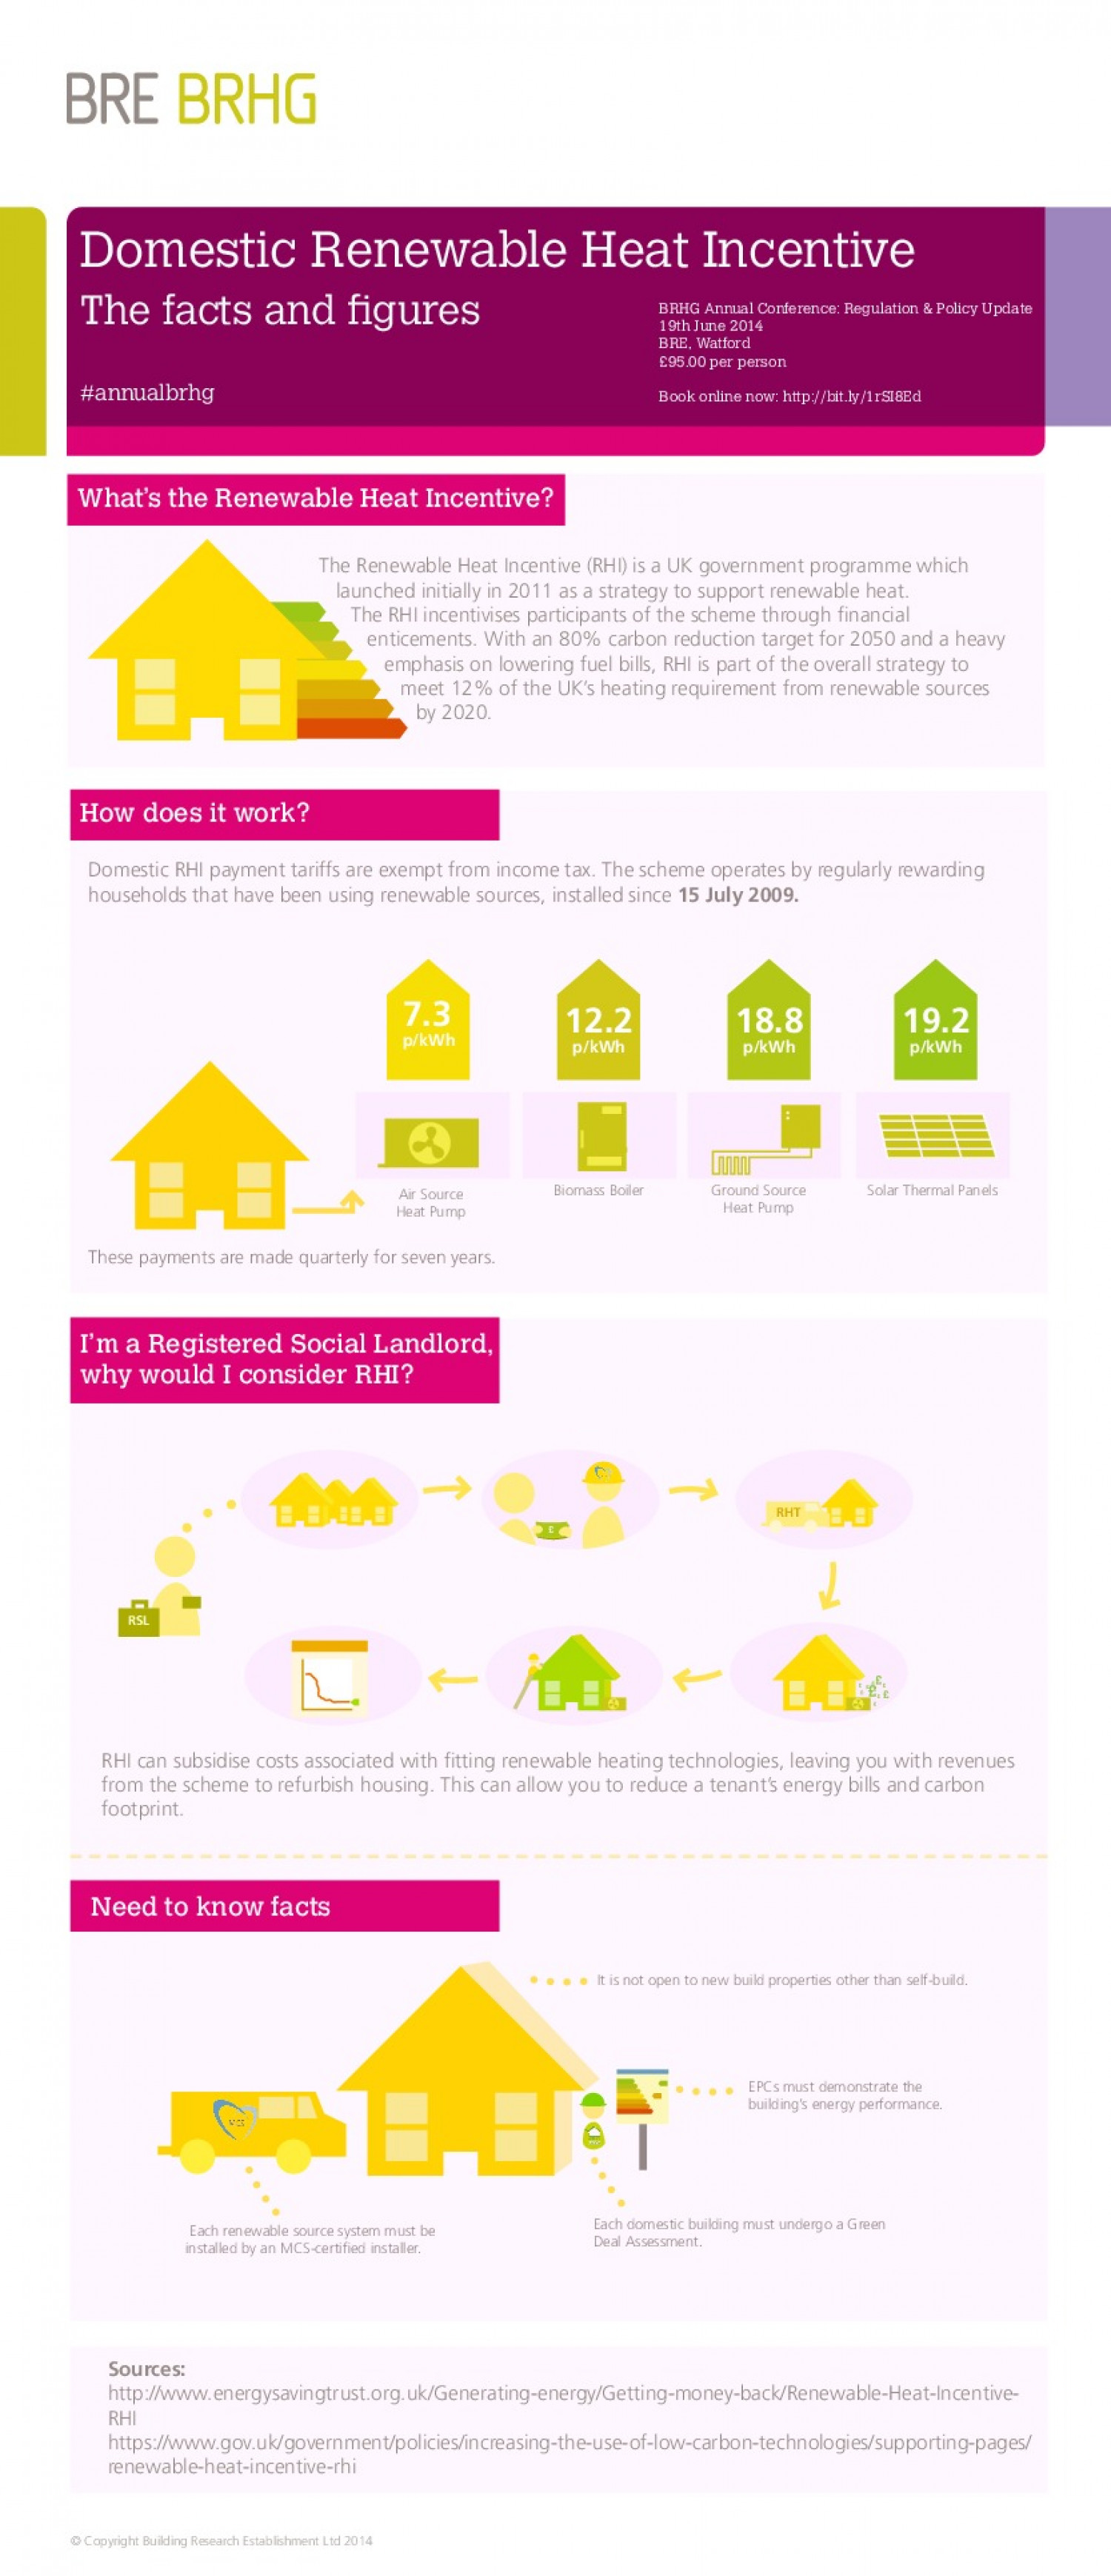 Domestic Renewable Heat Incentive: The Facts and Figures Infographic